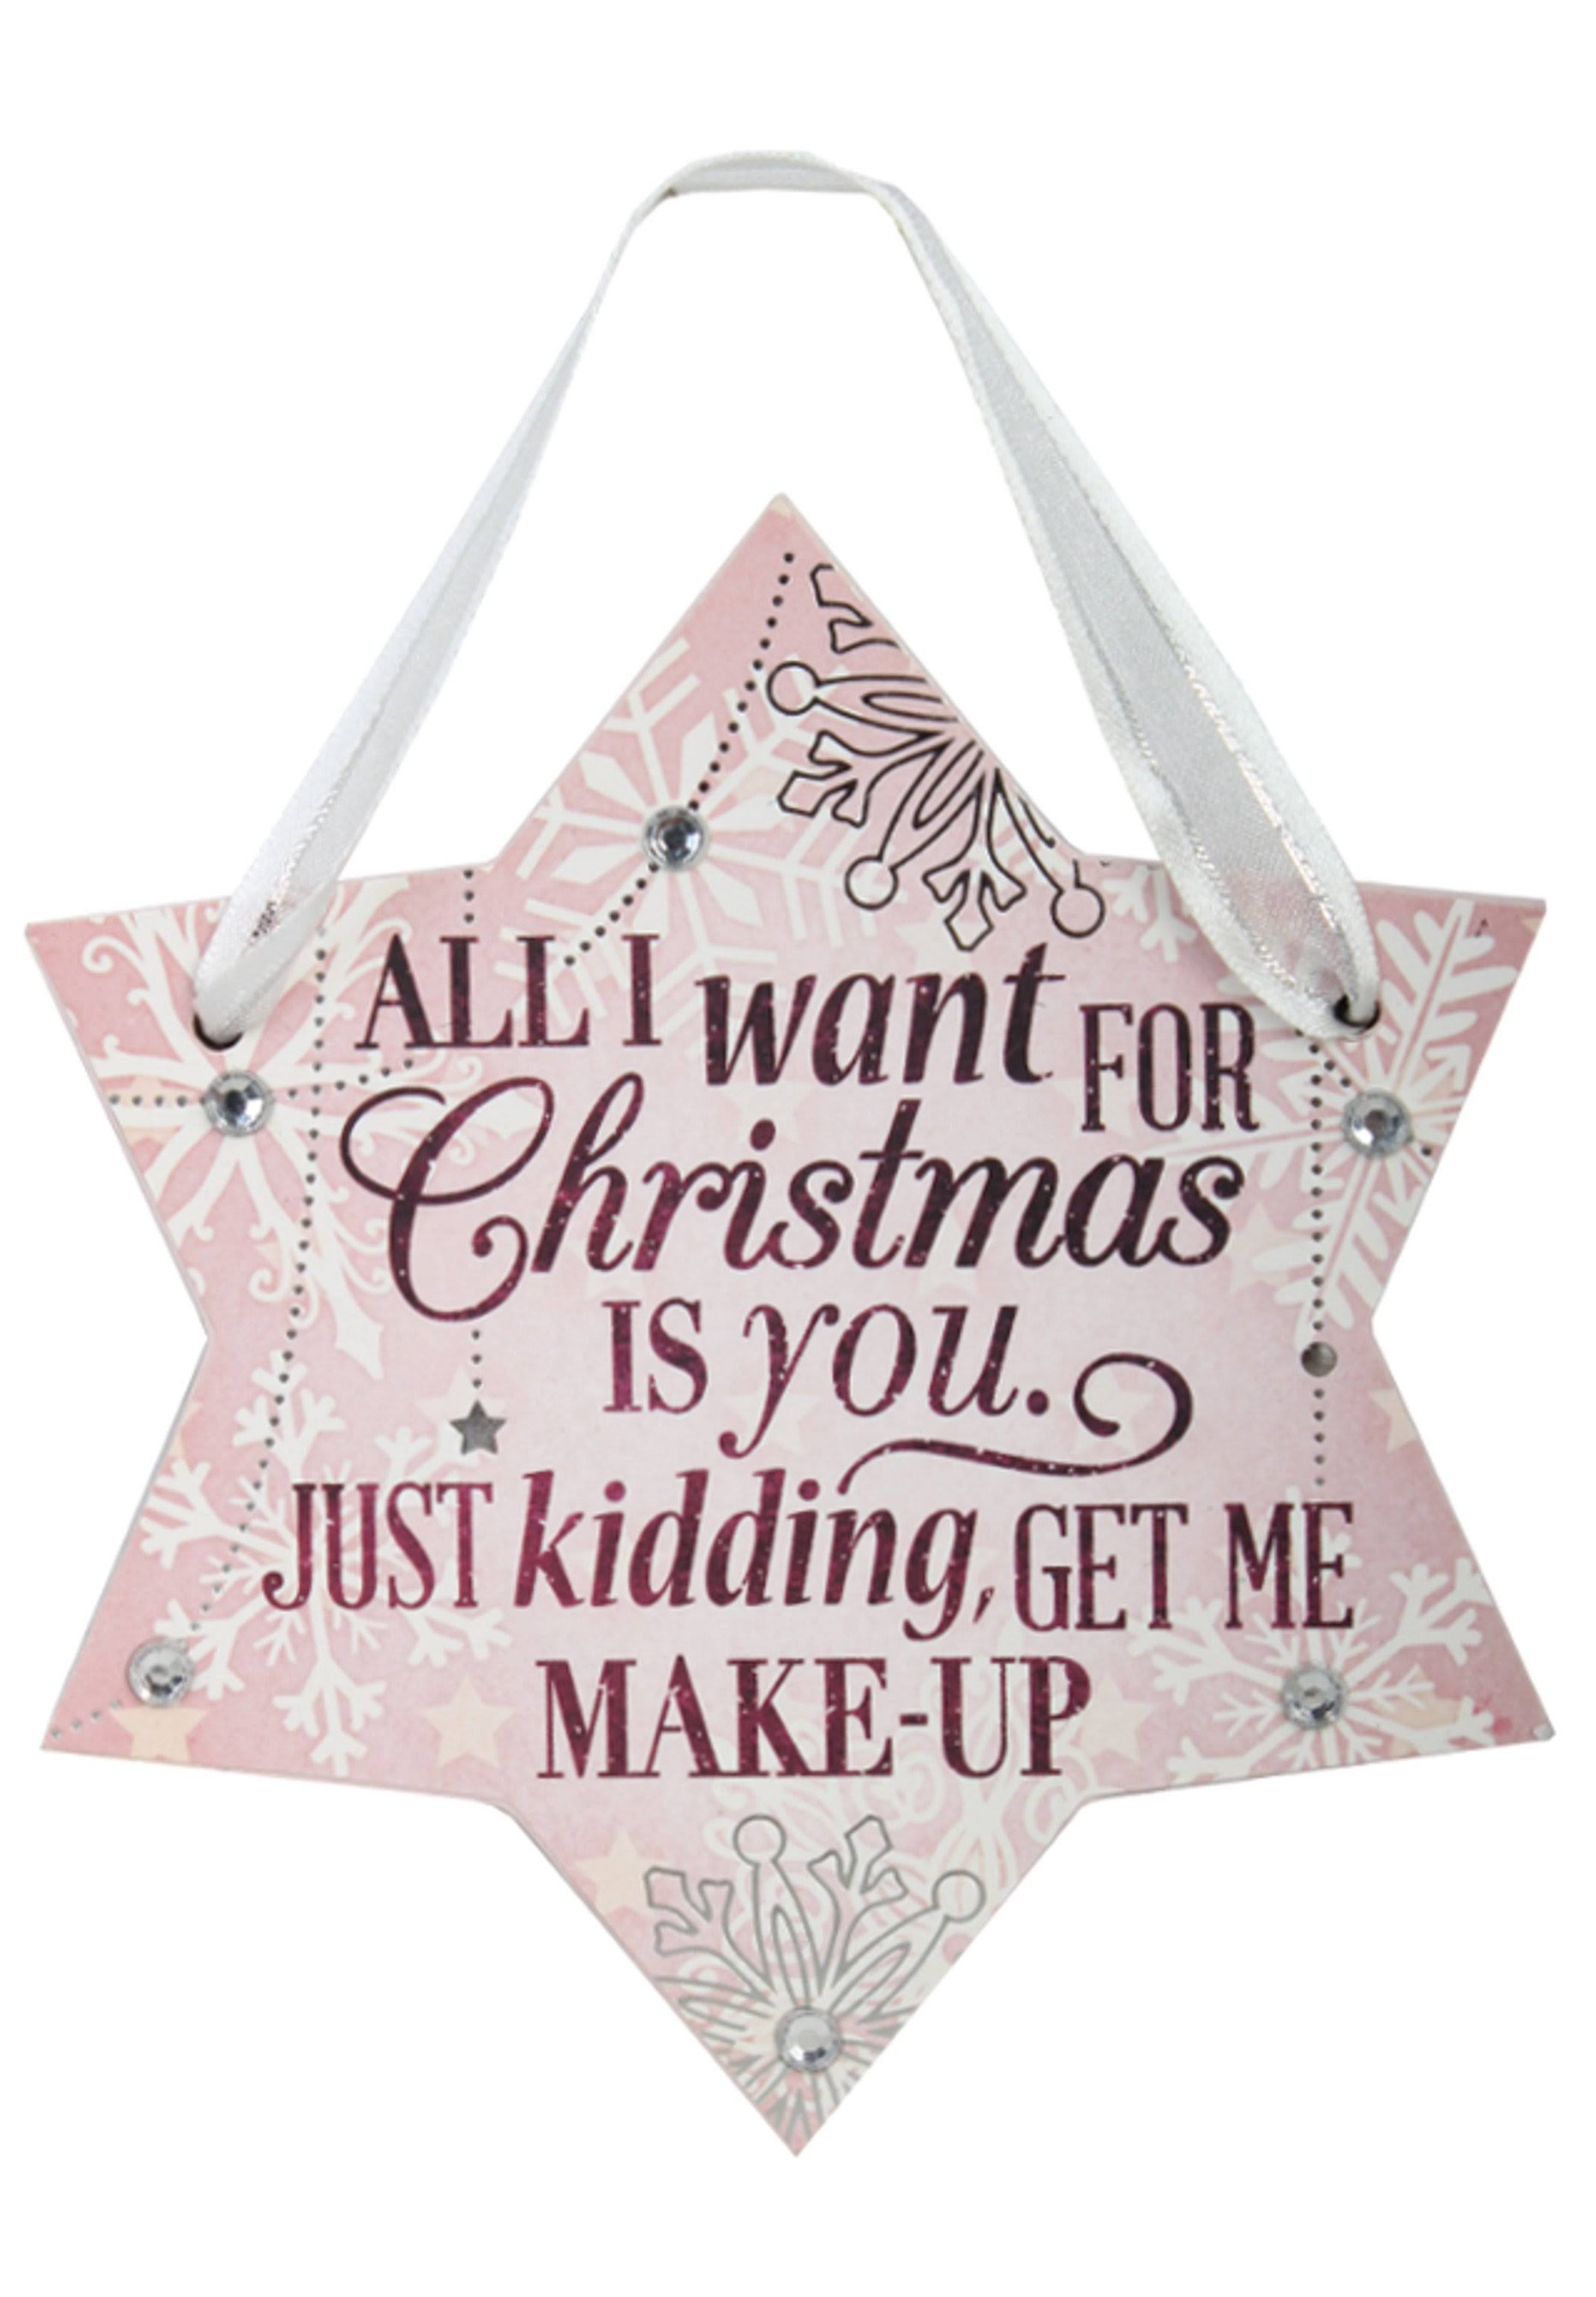 Festive Word Hanging Ornament - All I Want for Christmas Is You .. Just Kidding